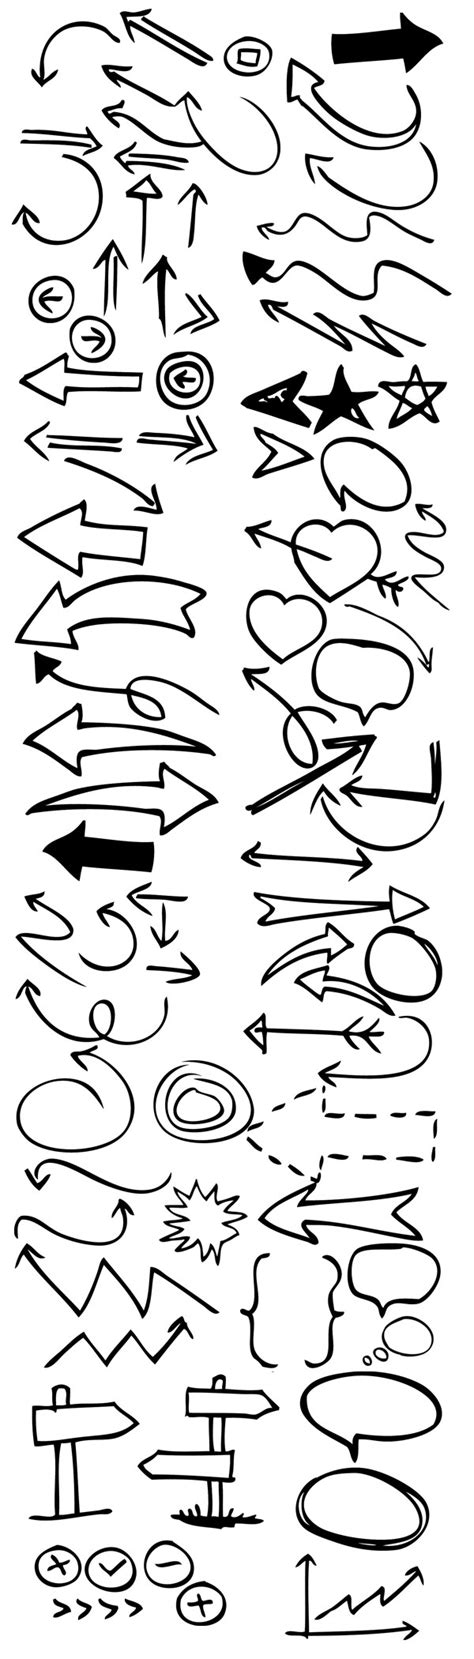 hand drawing pattern photoshop 90 hand drawn arrow and symbol photoshop brushes